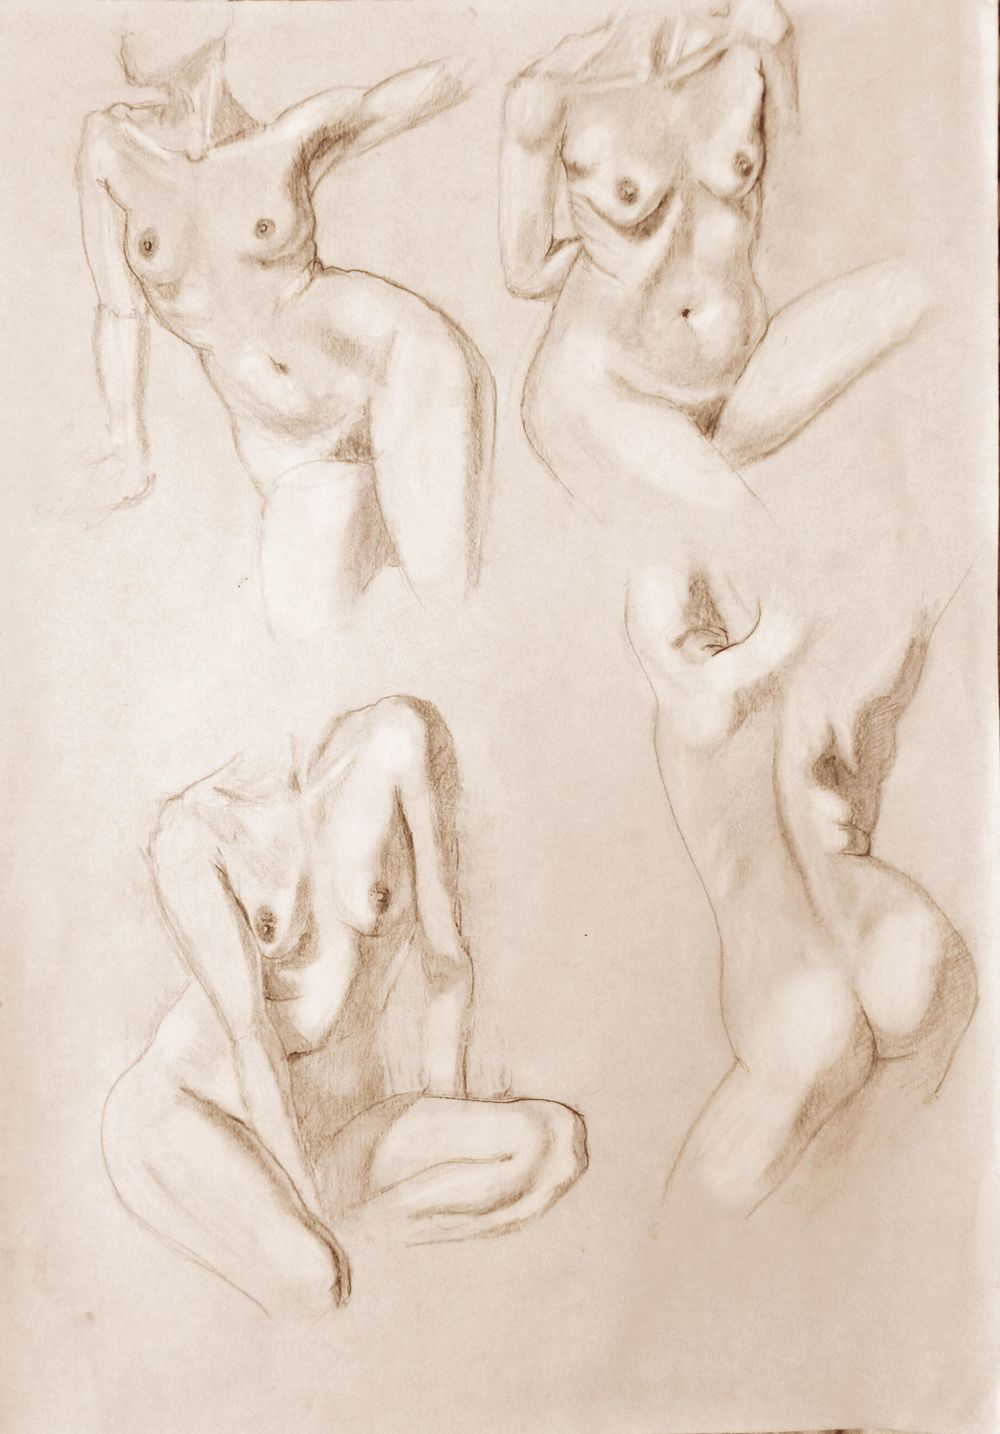 Figure drawing - Gesture - image 1 - student project